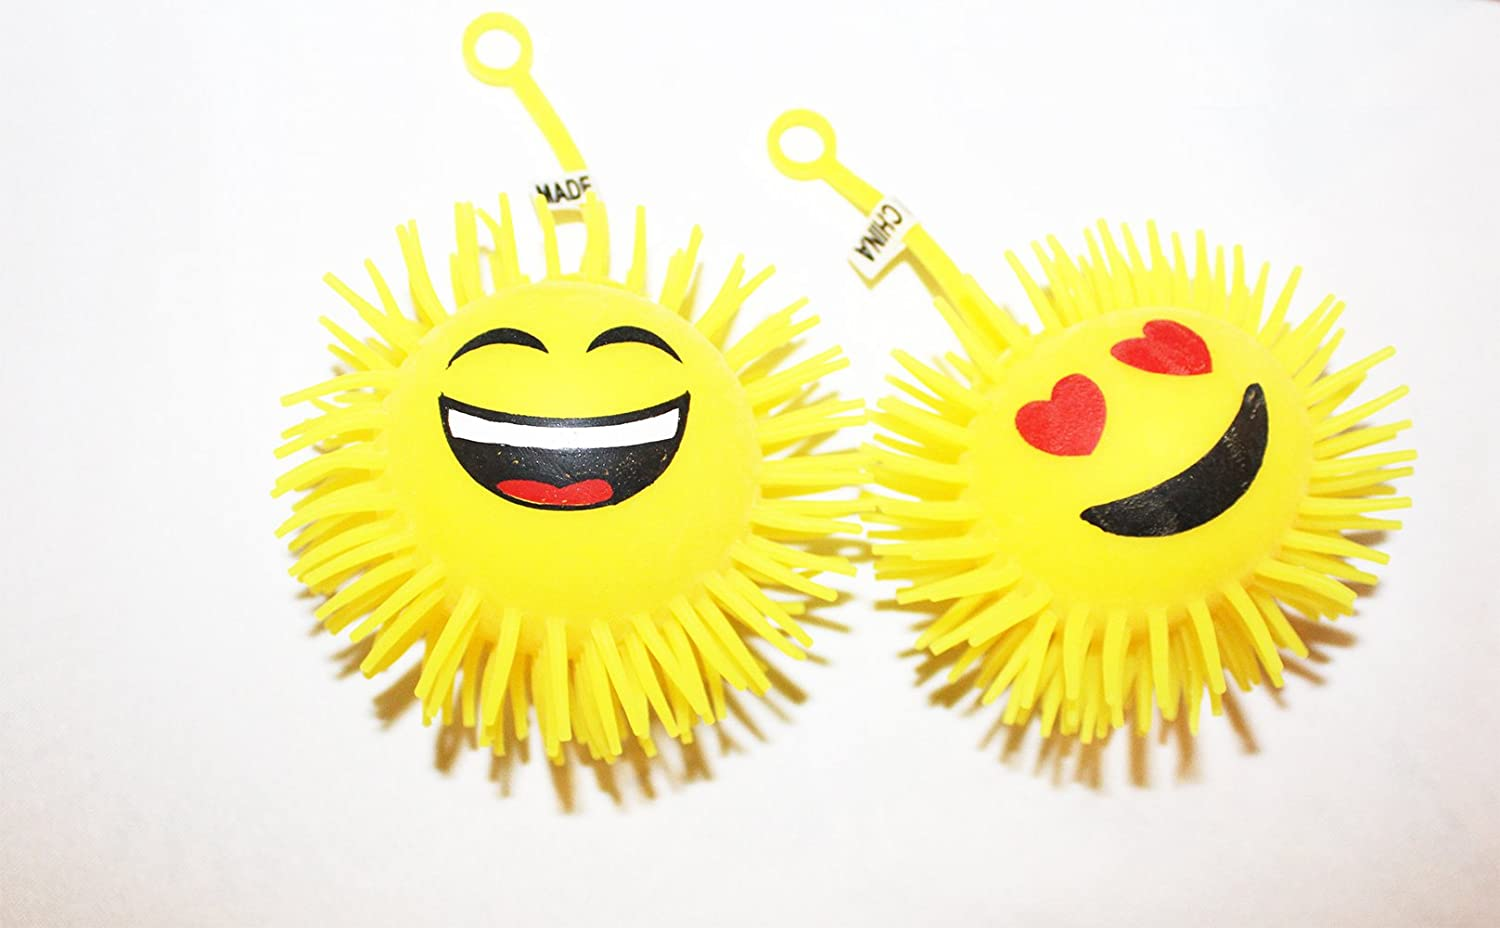 giveaways 12-Pack Massage Light Up LED Yellow Flashing Rubber 4 Balls for Kids Party goodie bags GPC Inc Emoji Spiky giveaways Massage Light Up LED Yellow Flashing Rubber 4 Balls for Kids Party goodie bags